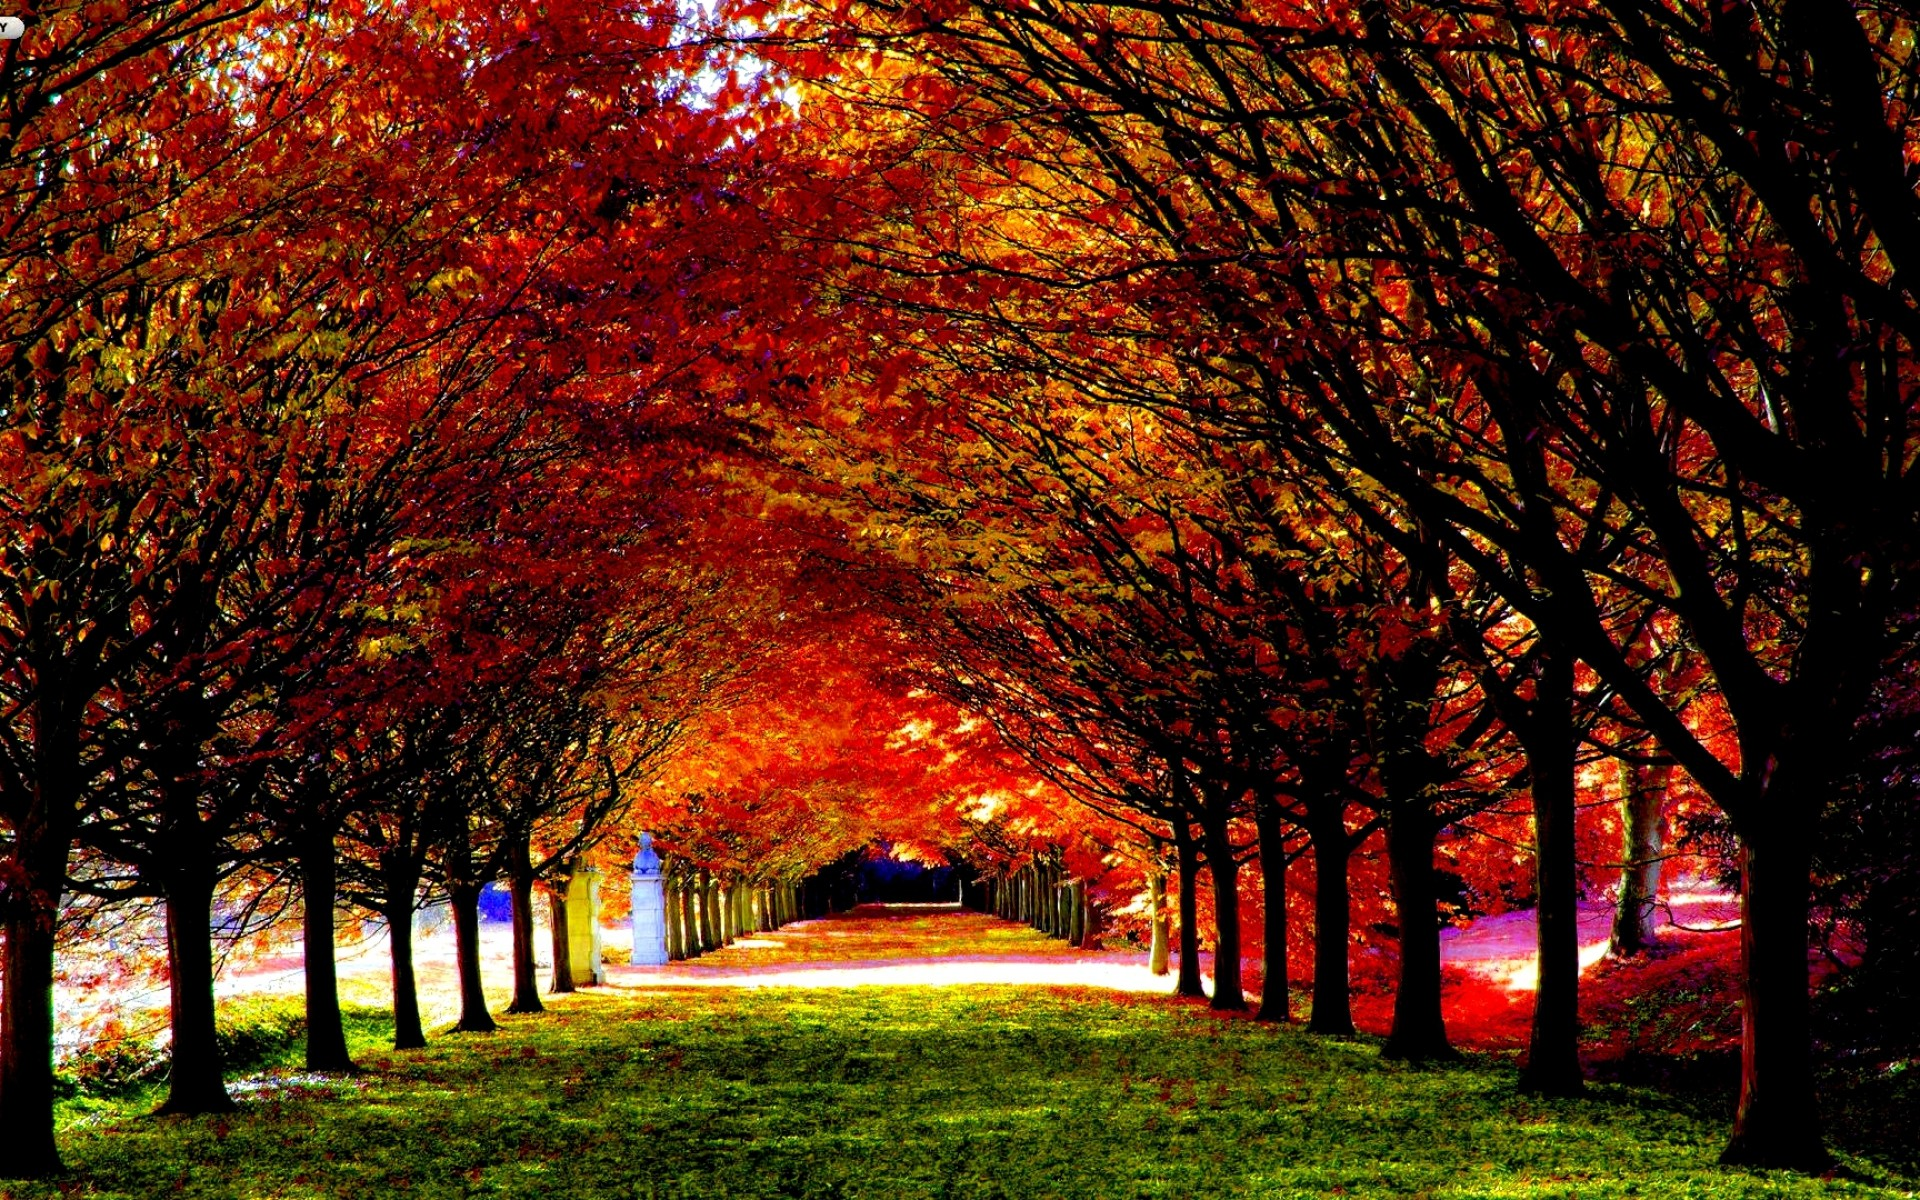 Fall Leaves And Pumpkins Wallpaper Fall Desktop Wallpapers Backgrounds 183 ①